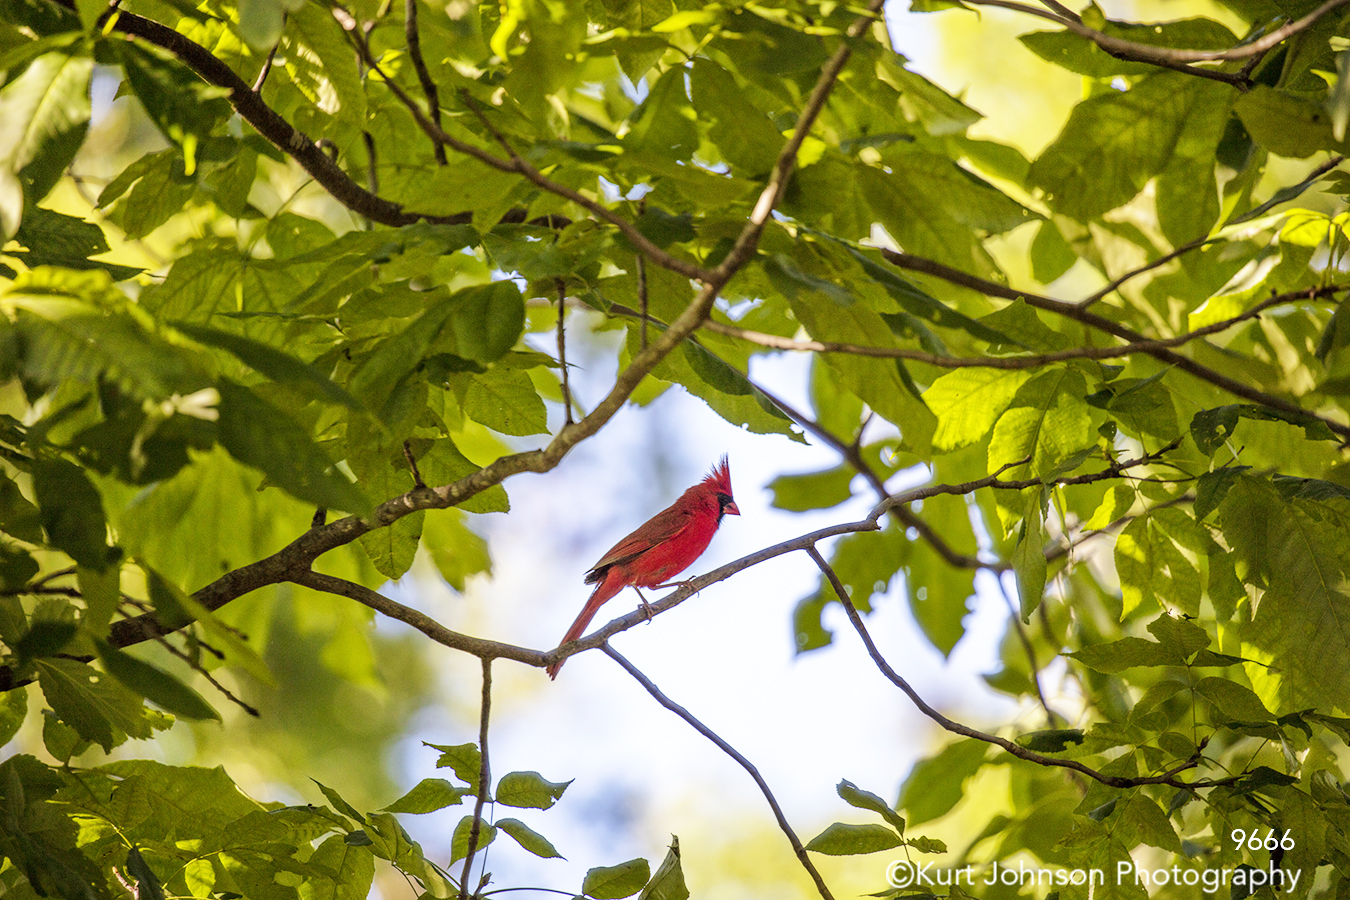 wildlife animal bird cardinal leaves green